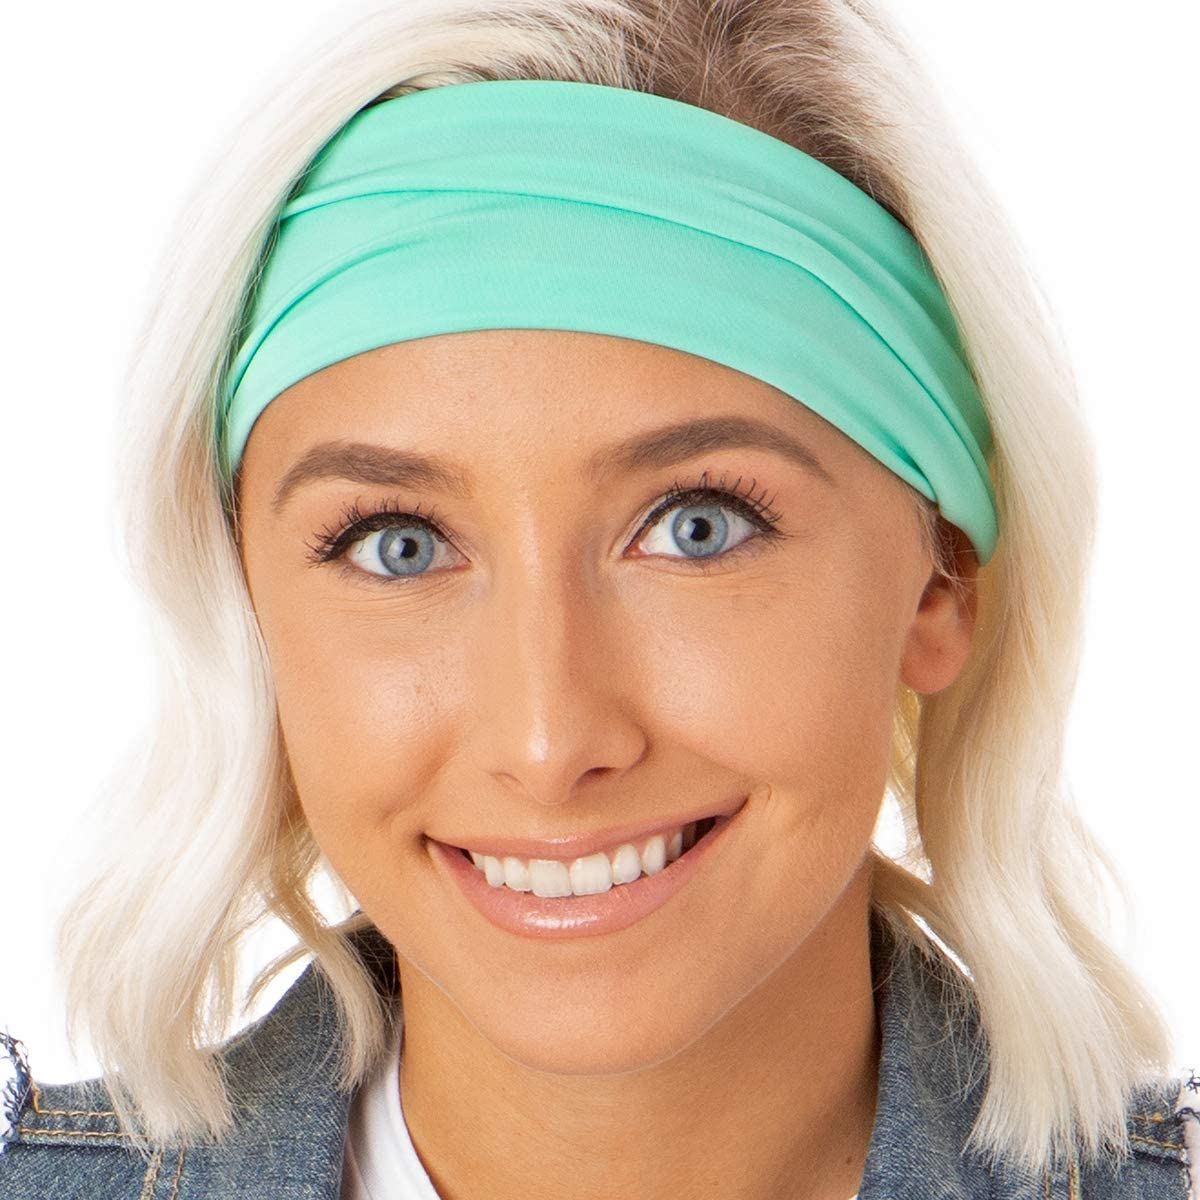 Hipsy Adjustable /& Stretchy Xflex Band Wide Sports Headbands for Women Girls /& Teens